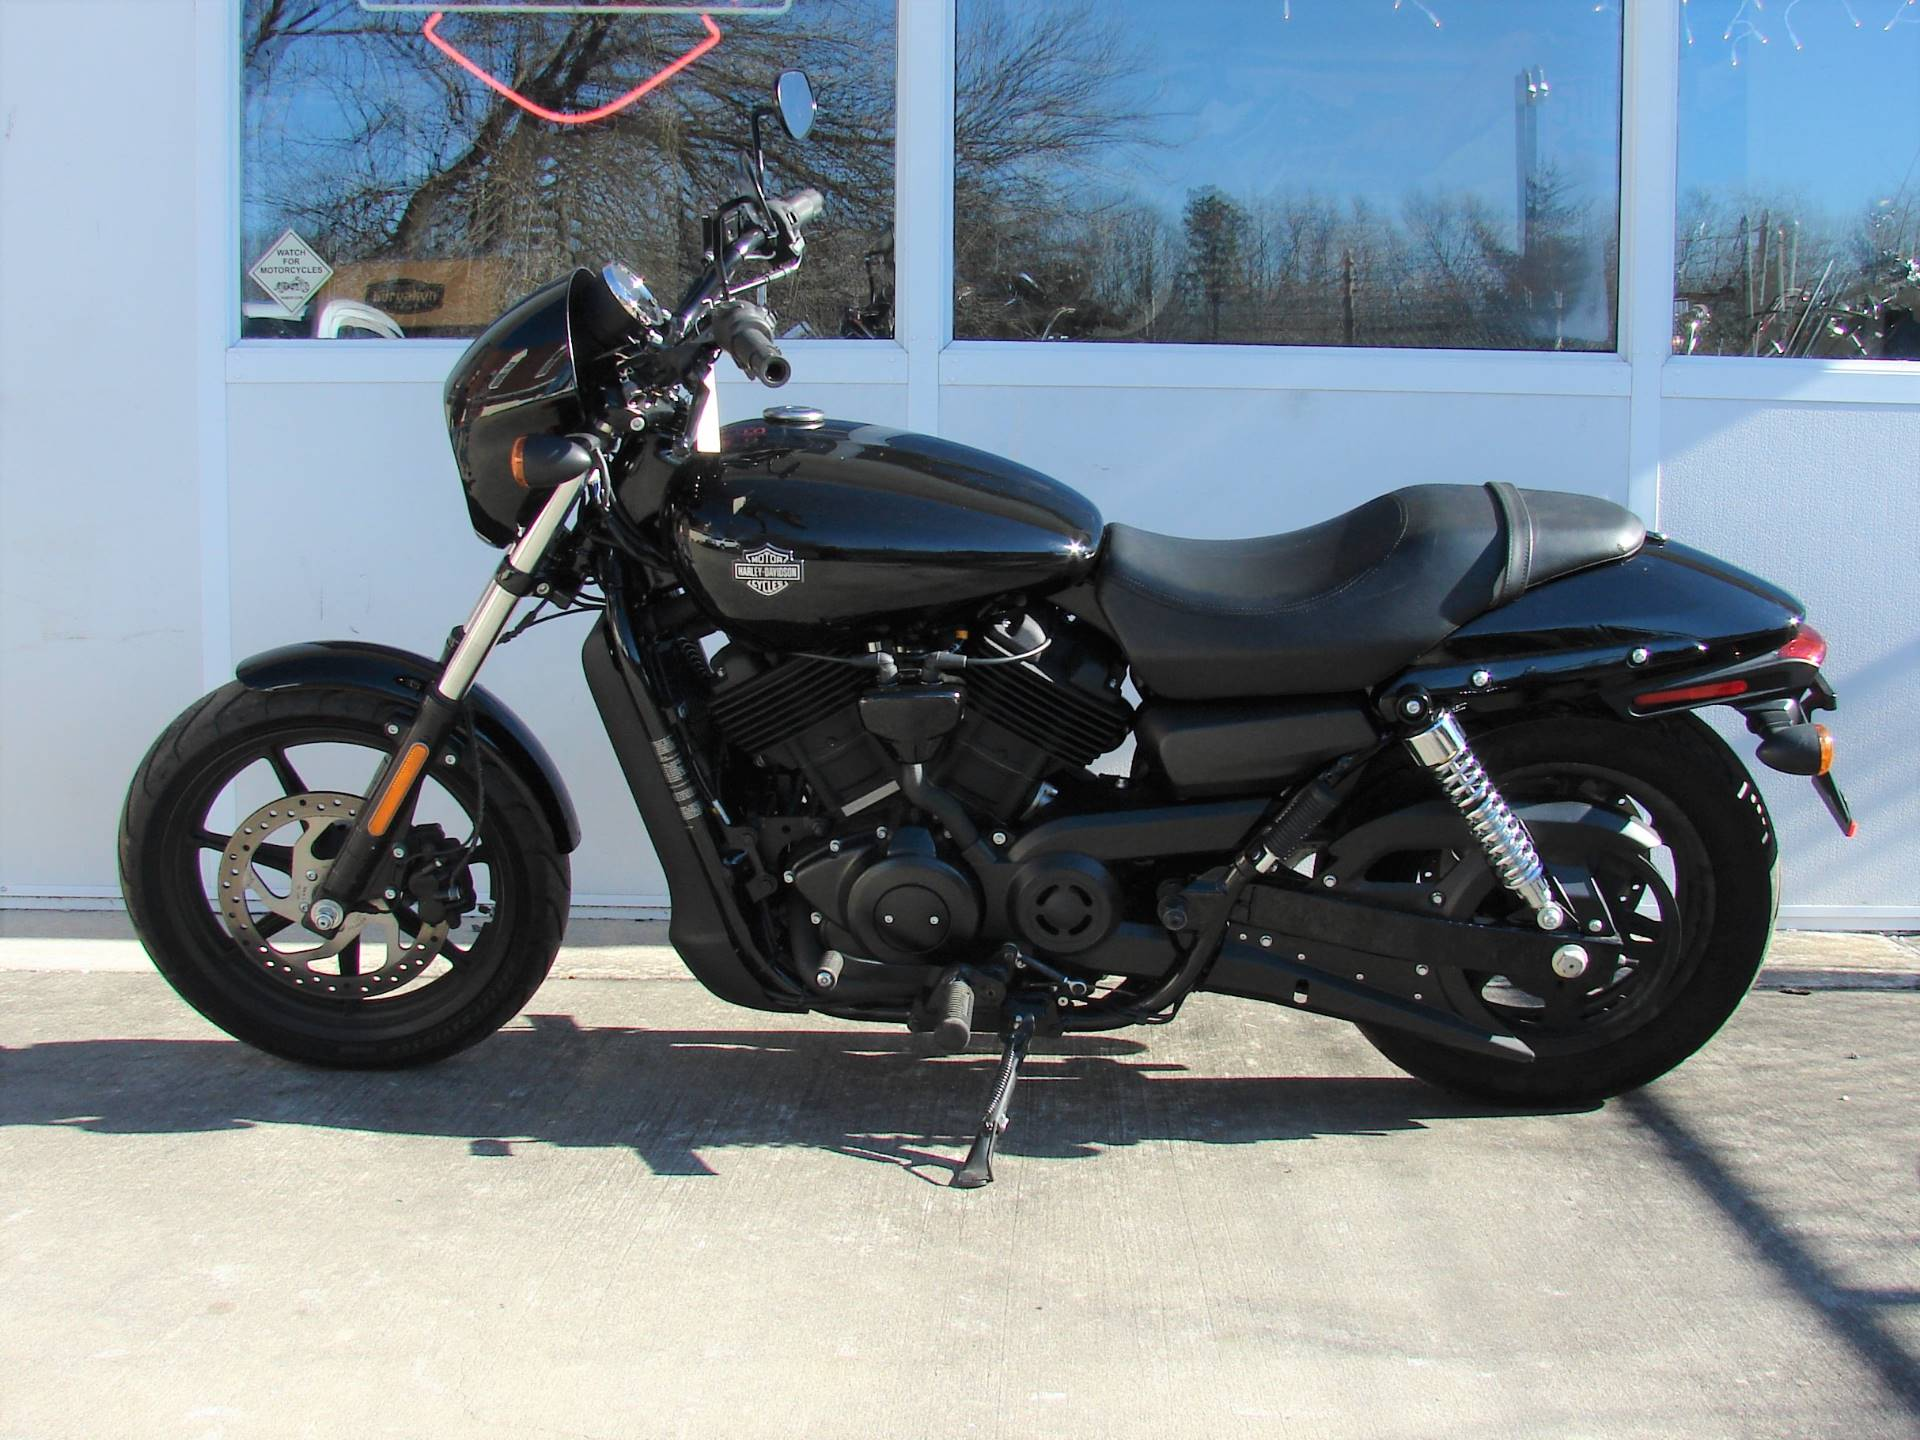 2017 Harley-Davidson XG500 Street Motorcycle in Williamstown, New Jersey - Photo 4